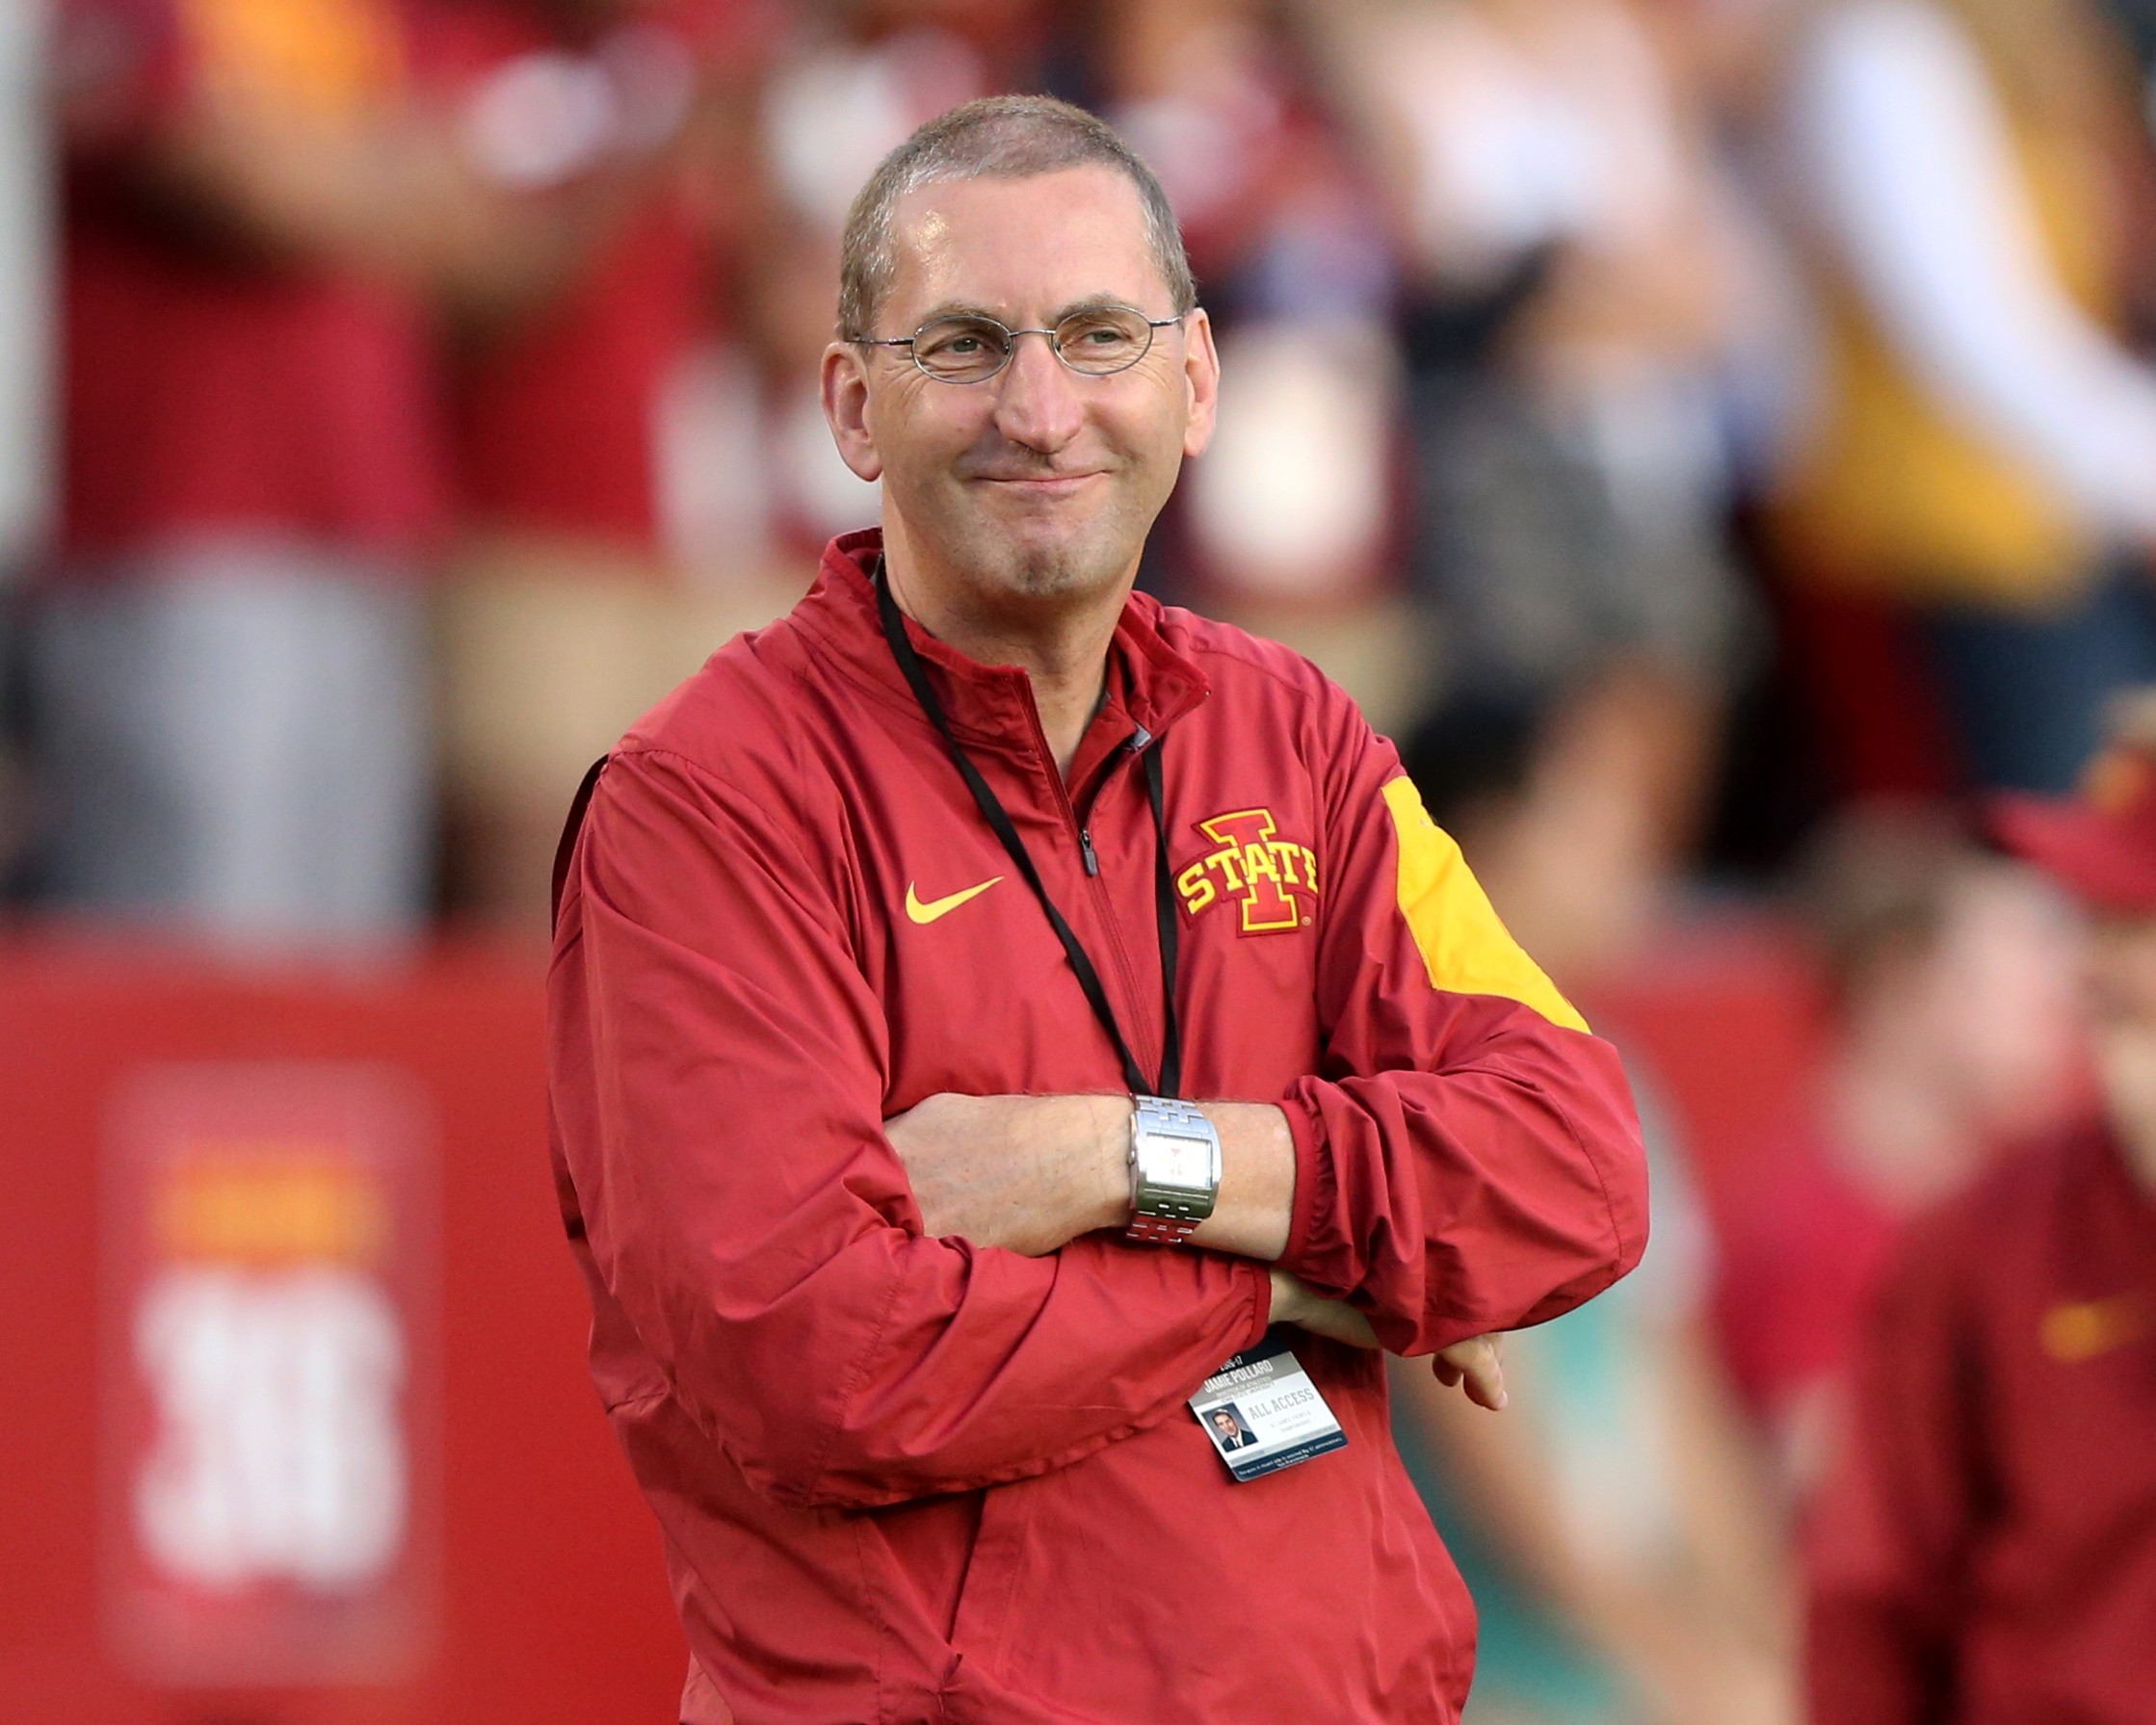 Sep 3, 2016; Ames, IA, USA; Iowa State athletic director Jamie Pollard watches the Cyclones pregame warmups for their game against the Northern Iowa Panthers at Jack Trice Stadium. Mandatory Credit: Reese Strickland-USA TODAY Sports